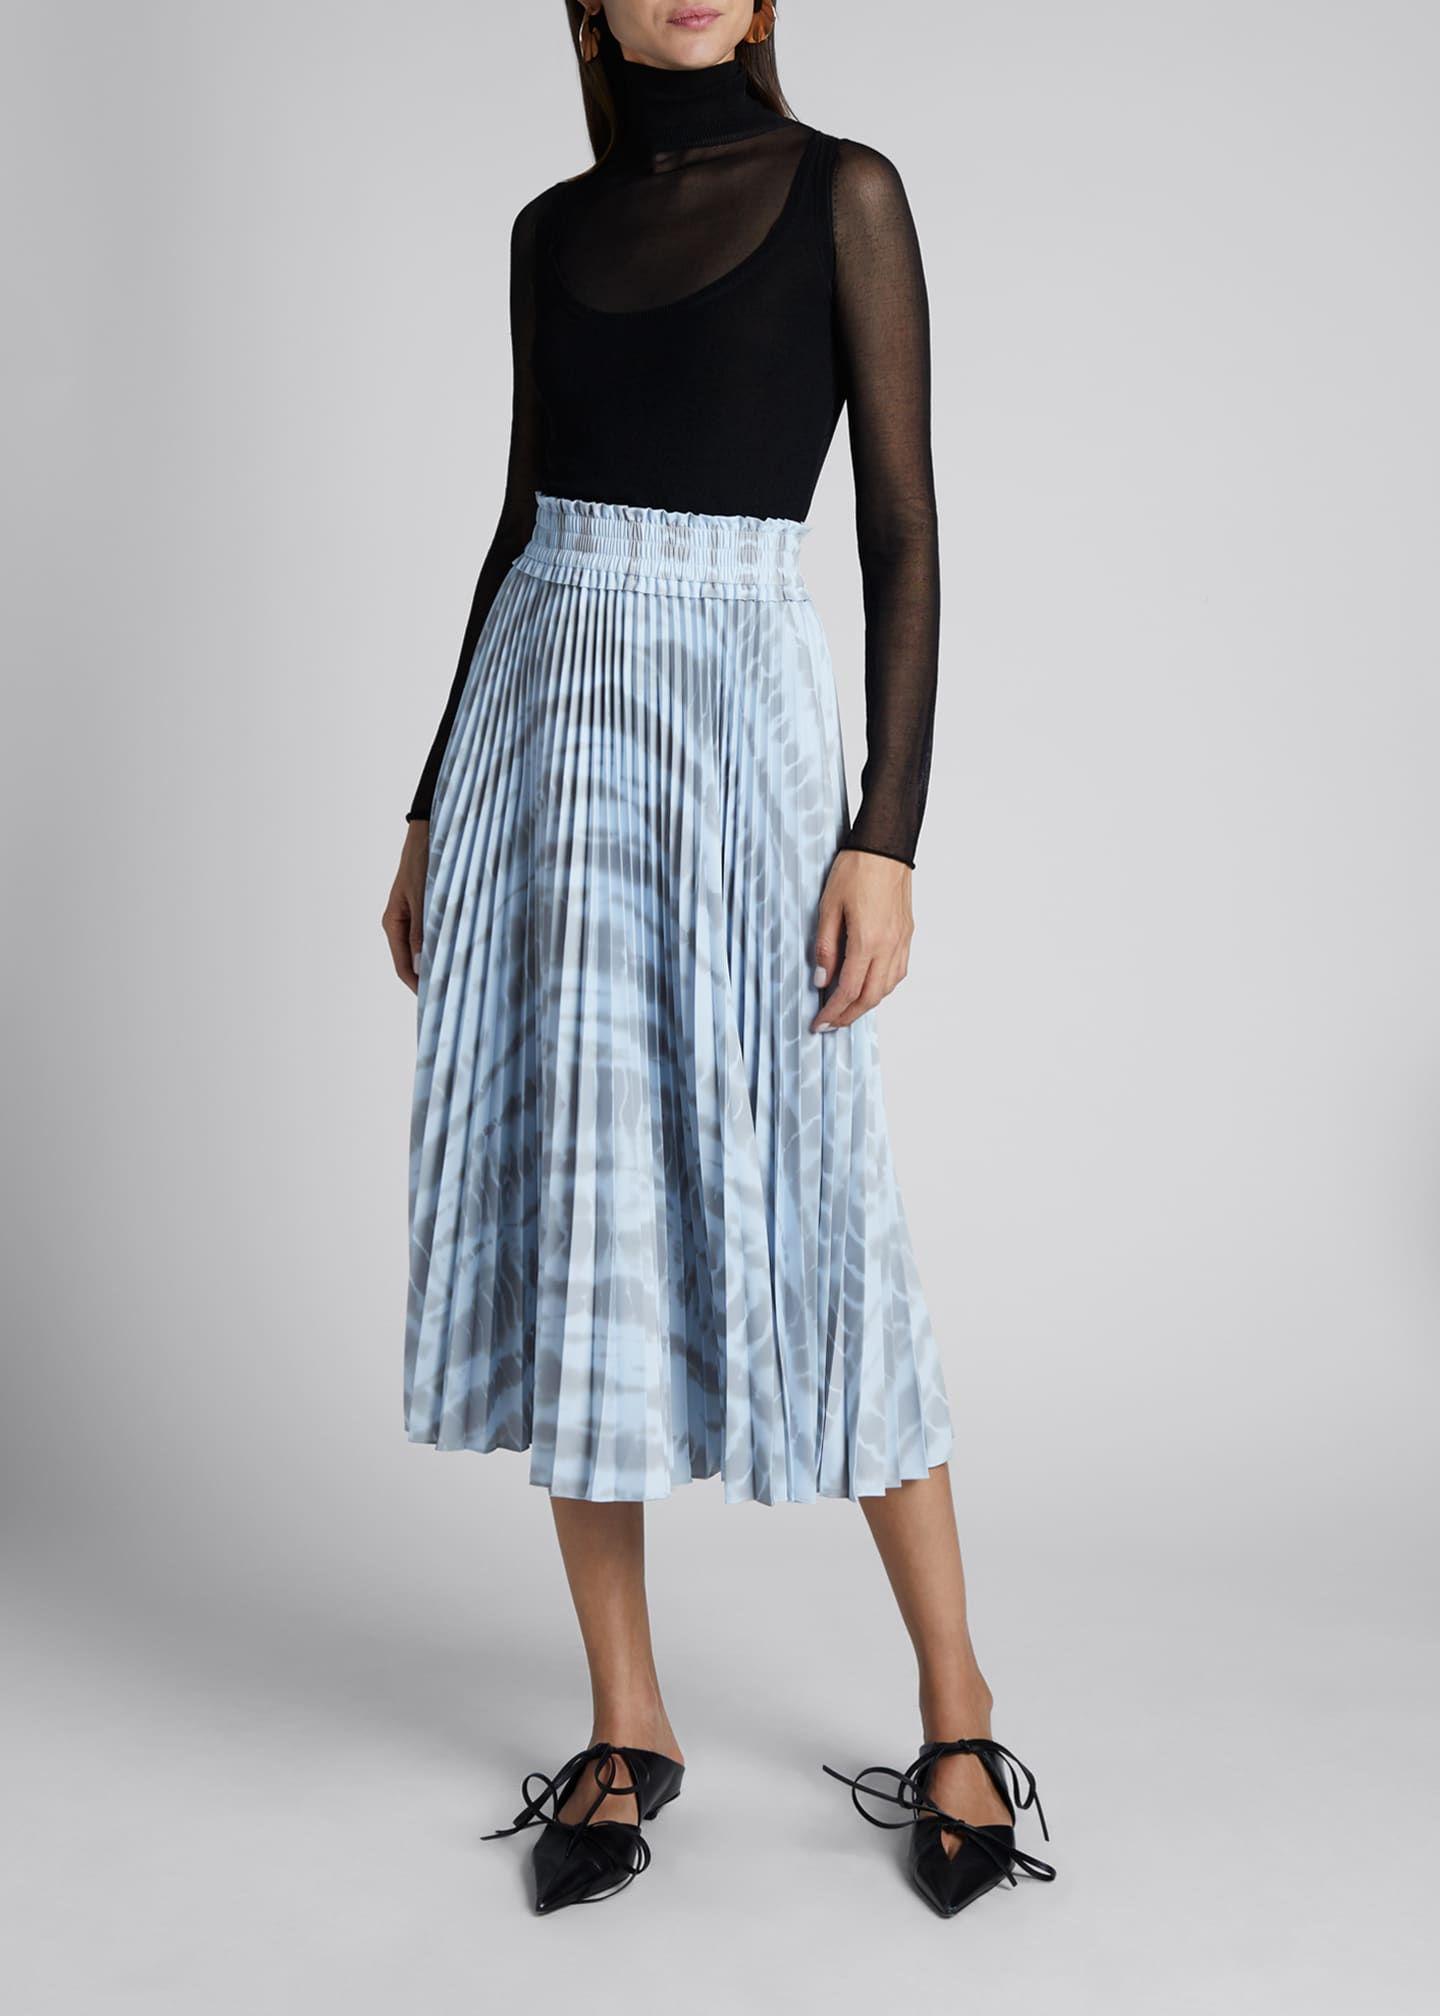 Pleated Tie-Dye Midi Skirt